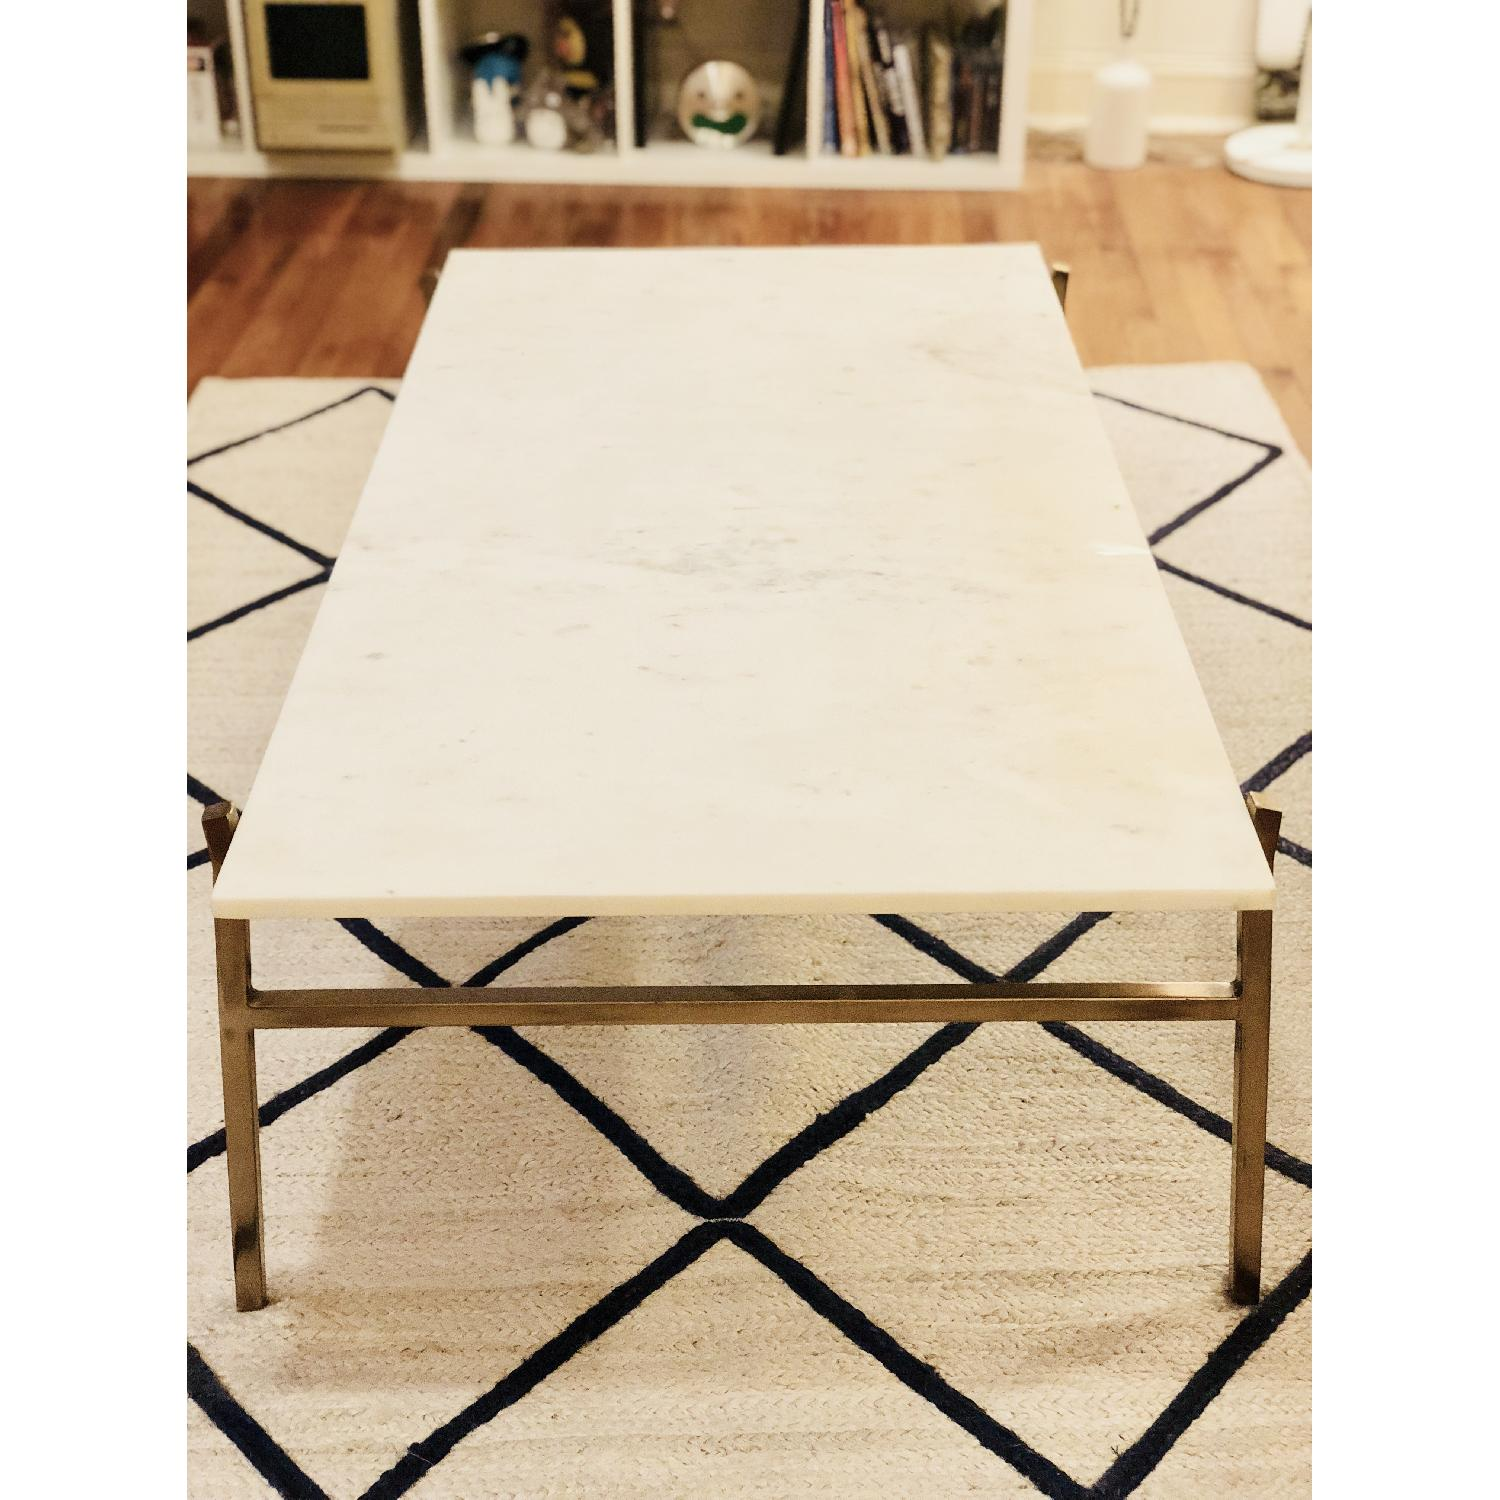 CB Slab Large Marble Coffee Table W Brass Base AptDeco - Cb2 slab marble coffee table